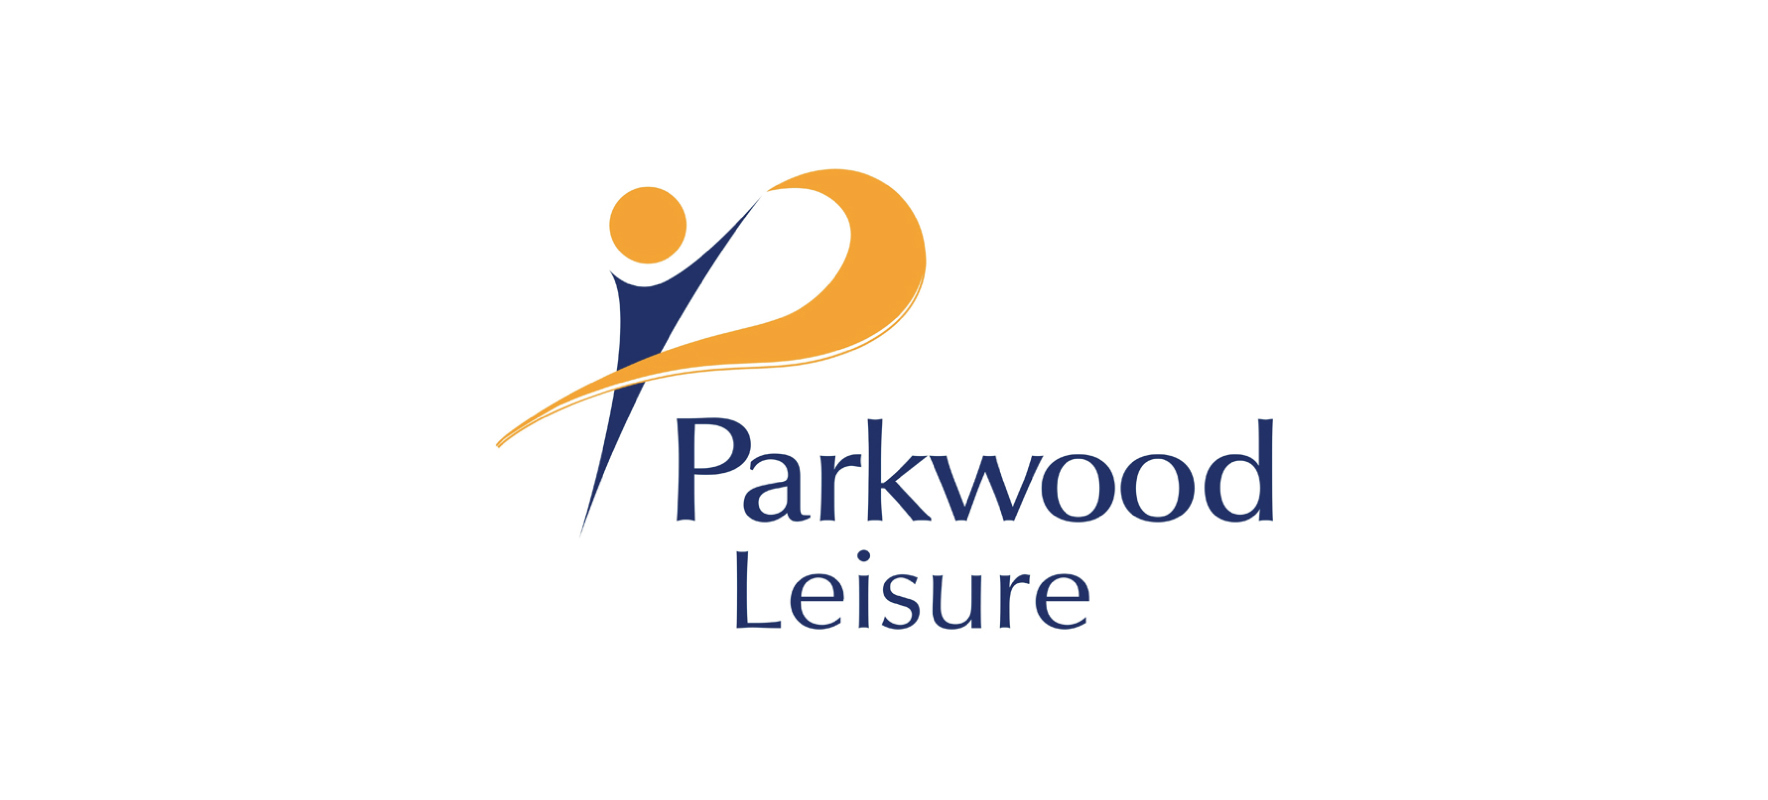 Parkwood Leisure